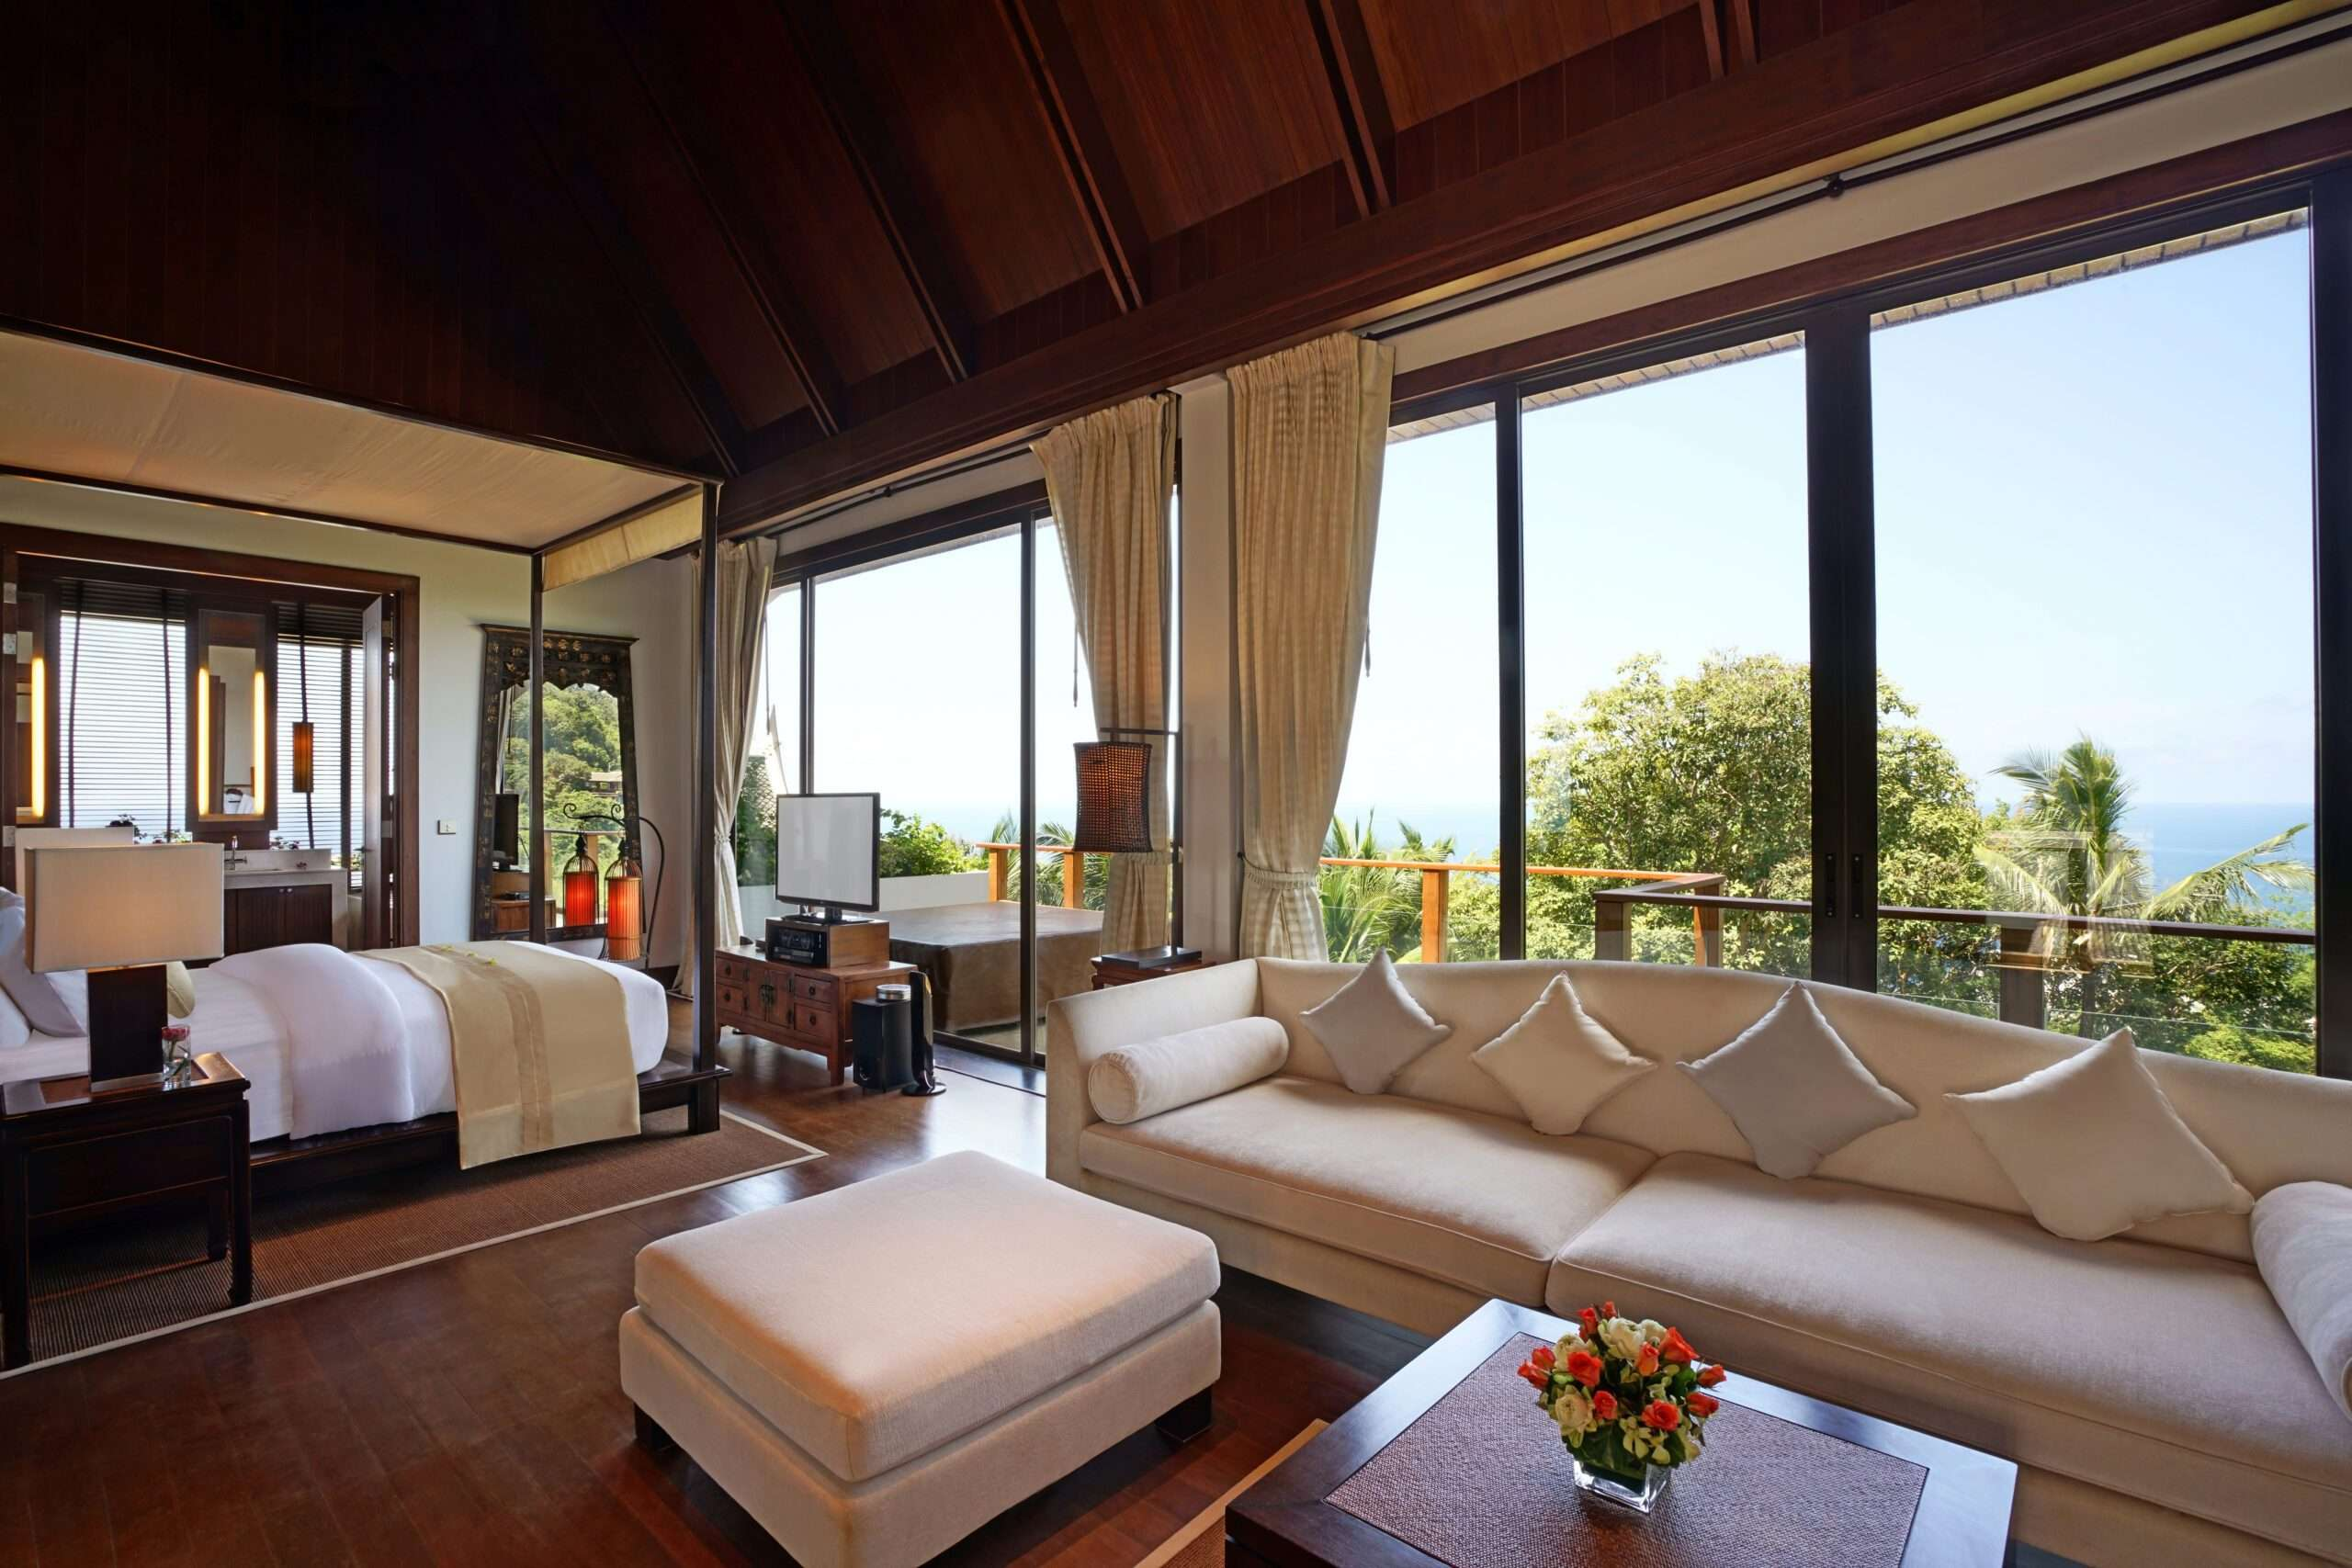 Master bedroom with bed and sofa at Infinity pool at Villa Aye in Phuket, Thailand